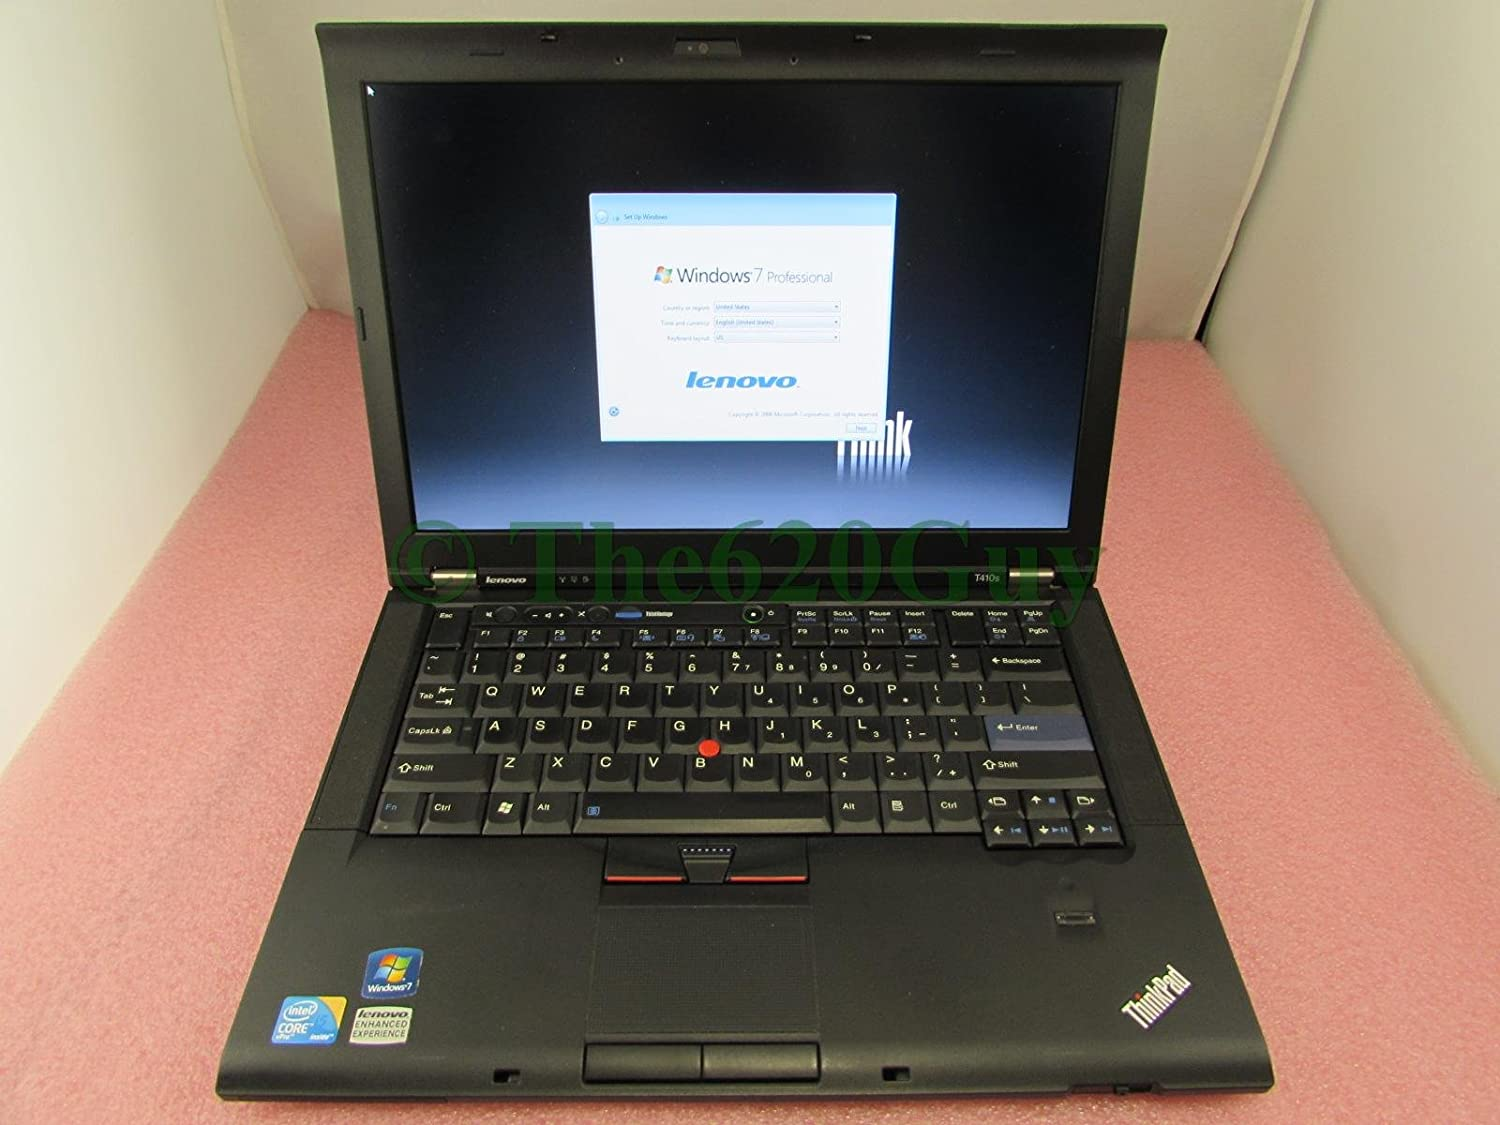 Lenovo Thinkpad T410s 141 Core I5 24ghz 128gb Ssd 4gb T410 Review Dvdrw Nvidia Thin Laptop Computers Accessories